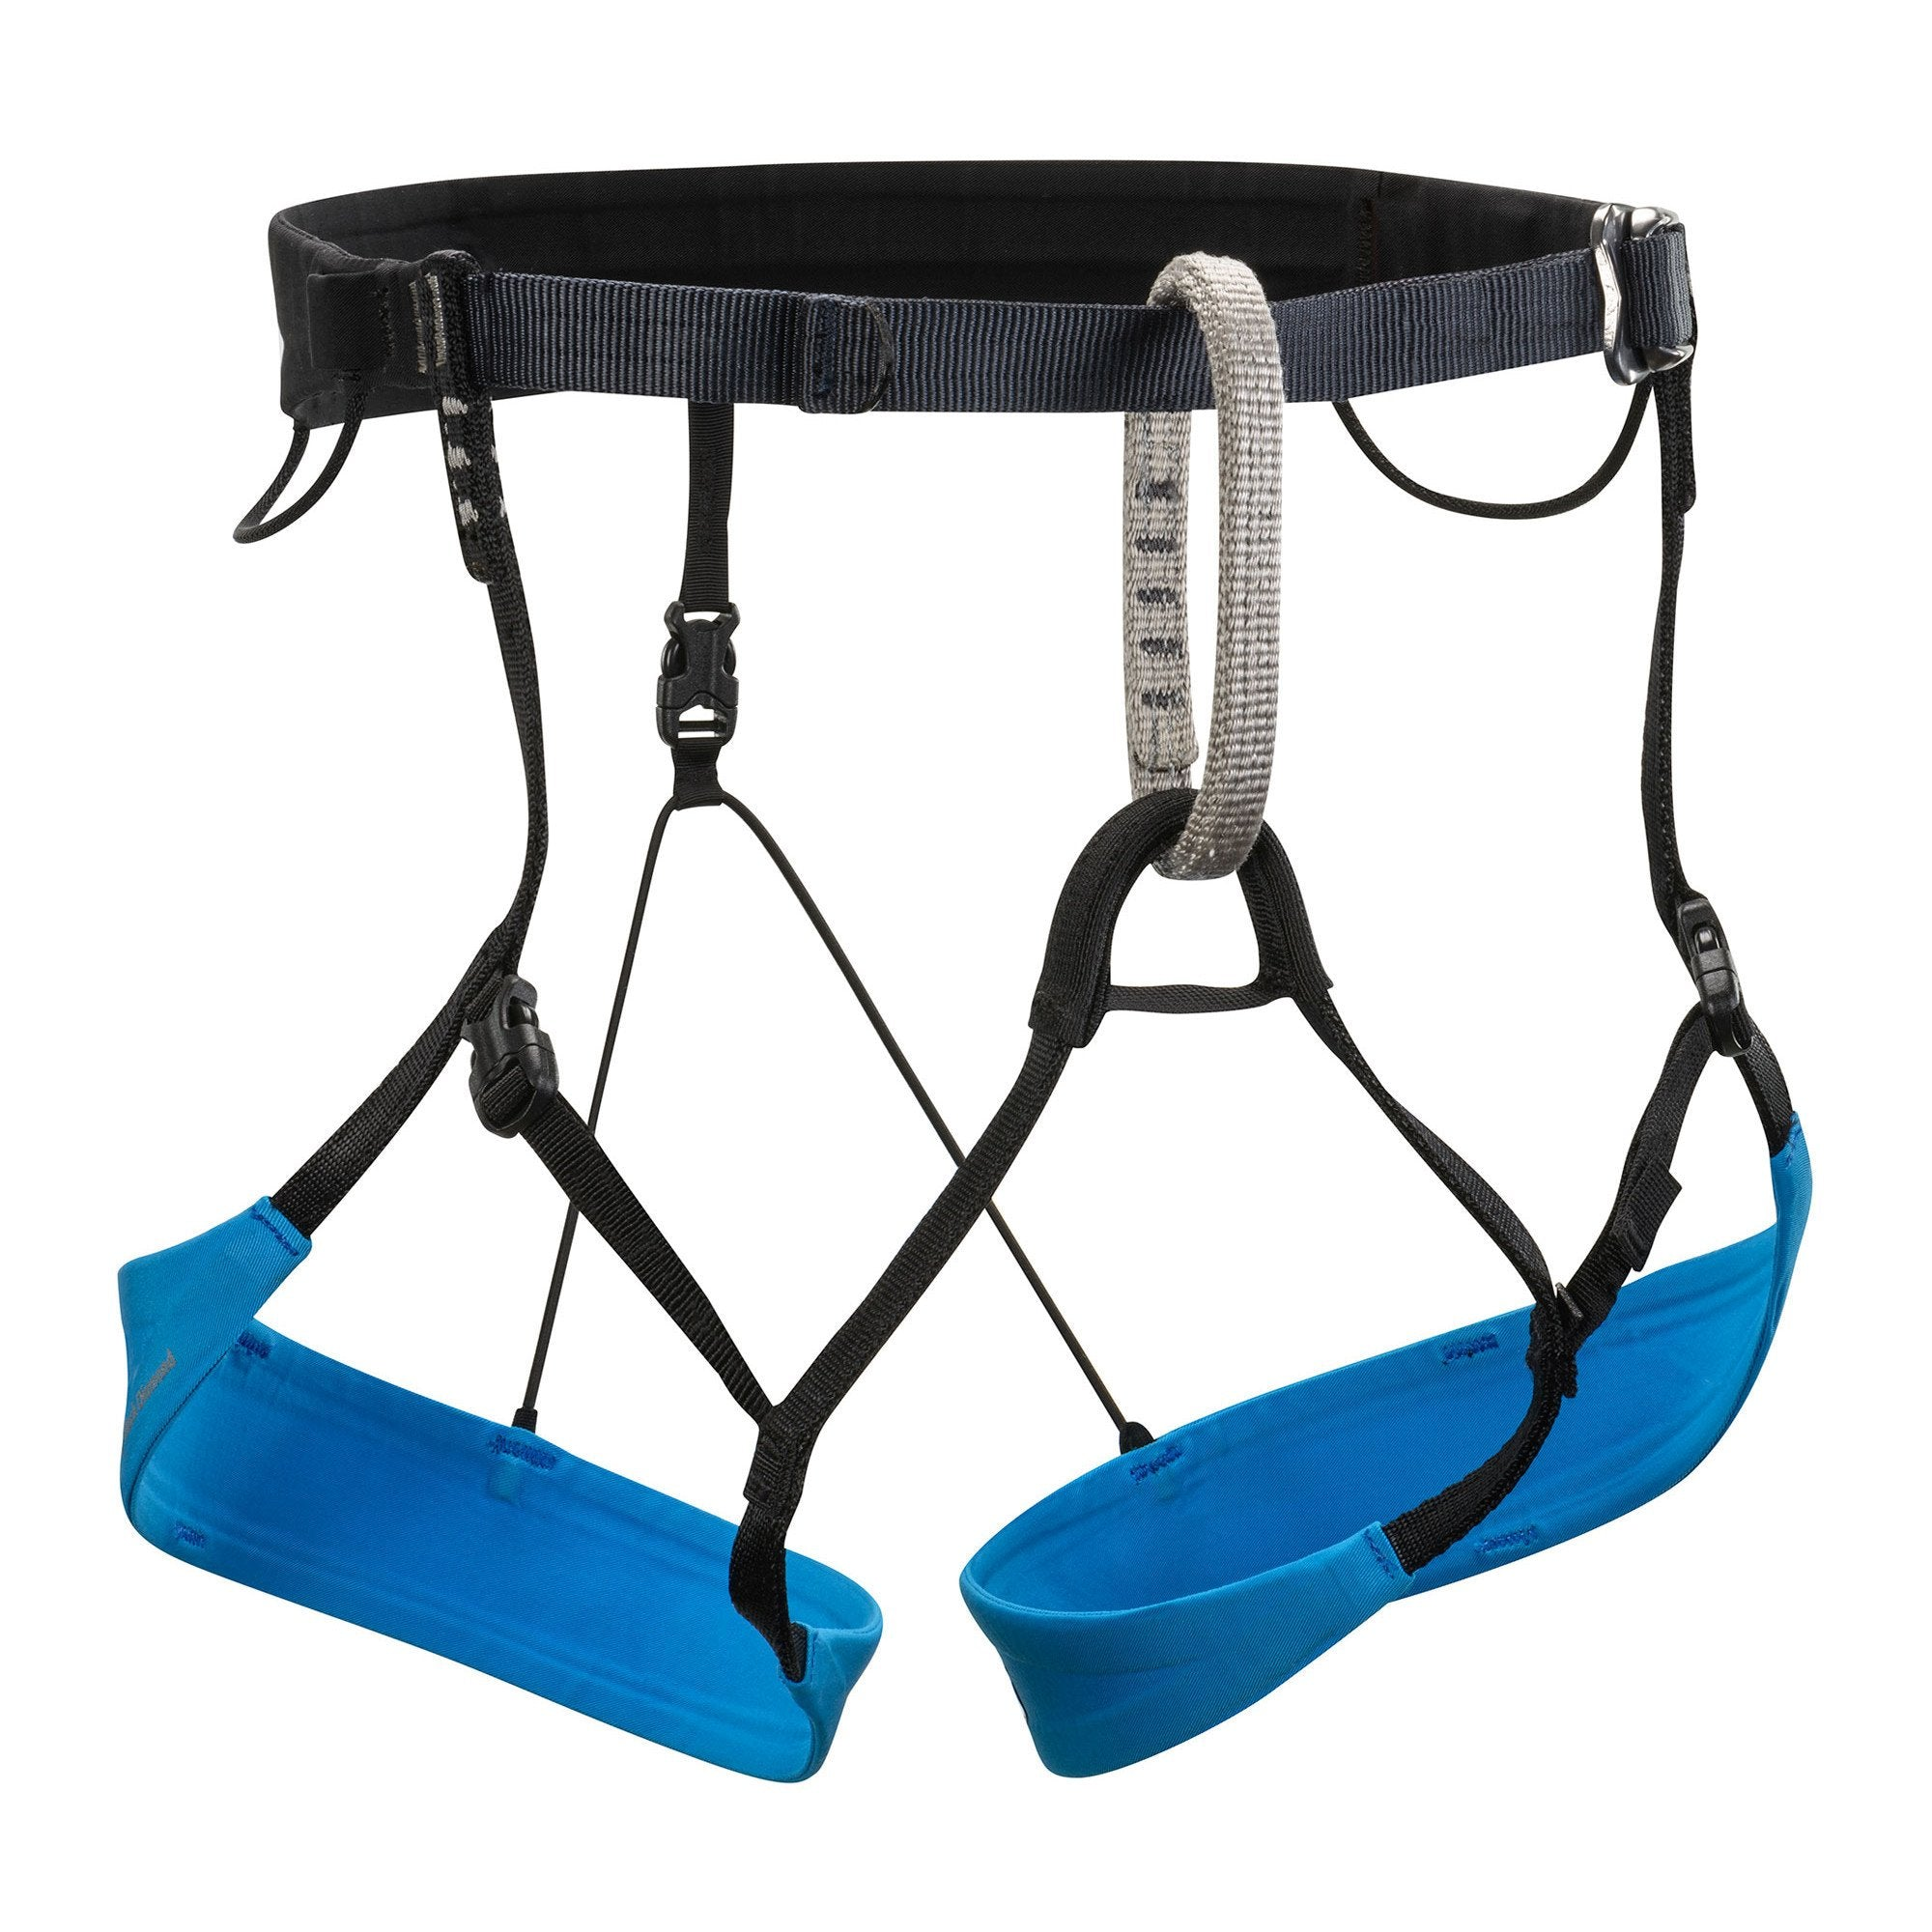 Black Diamond Couloir Harness, in black and blue colours